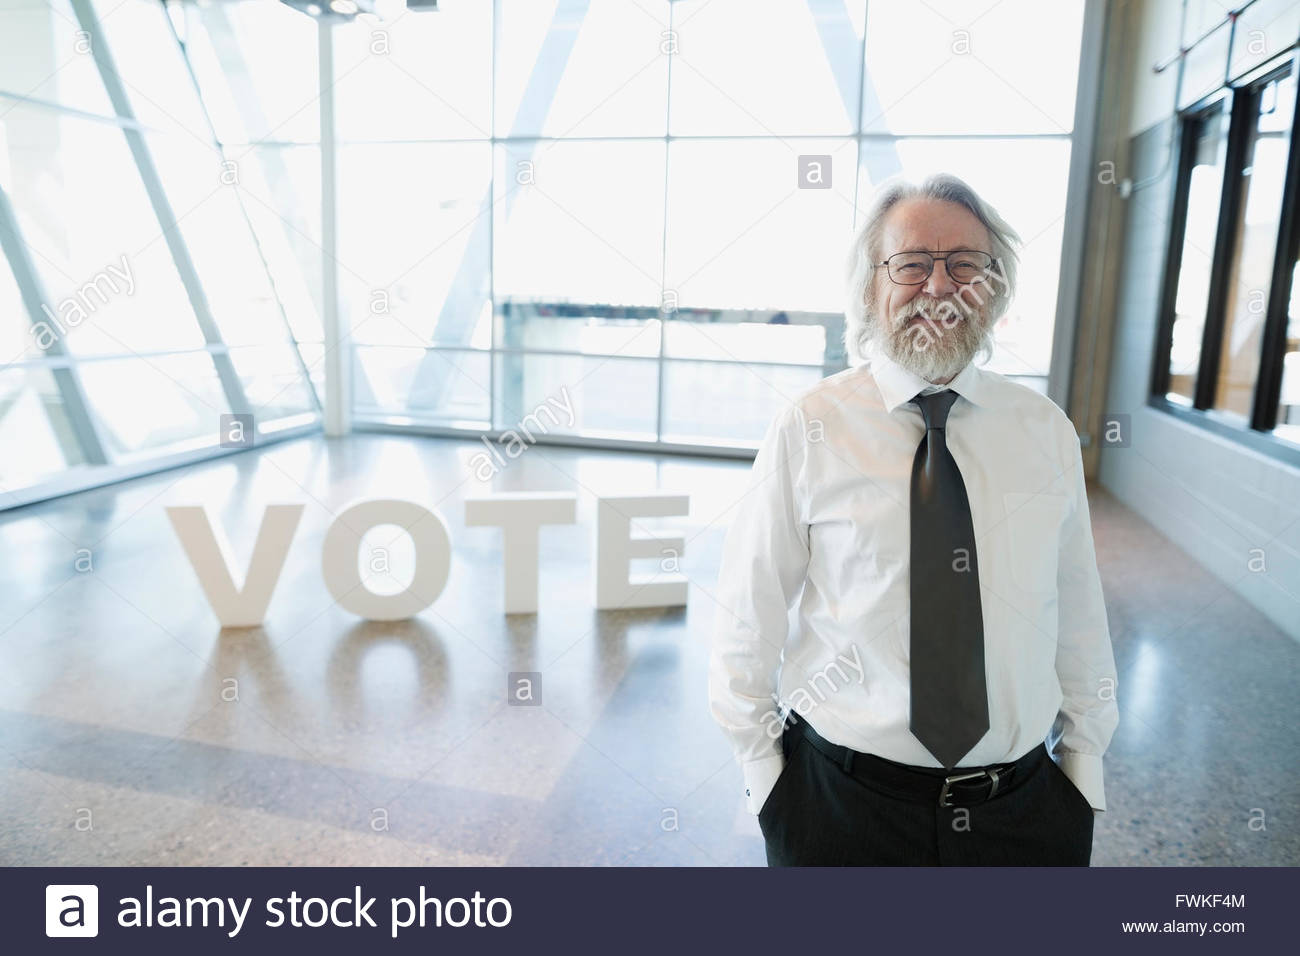 Portrait man avant de voter le texte Photo Stock